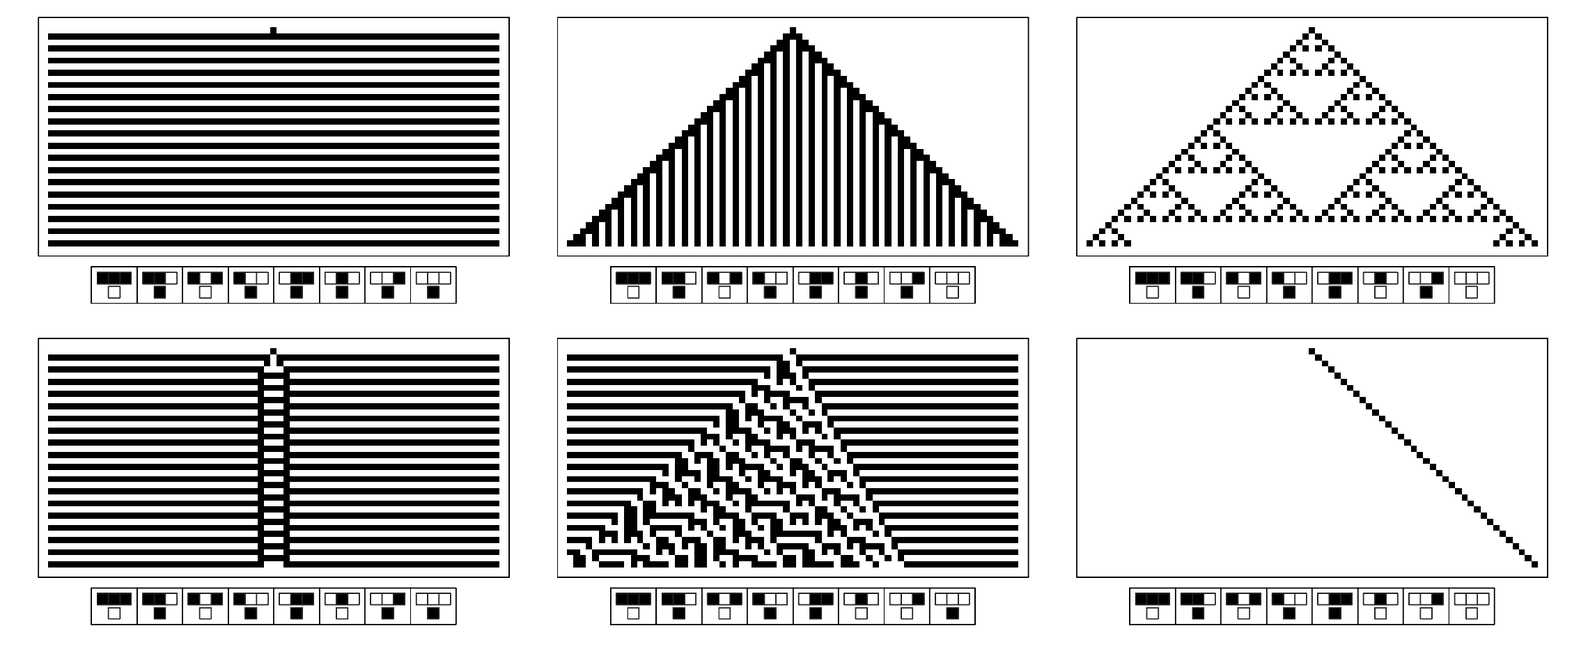 Sequence of elementary cellular automata